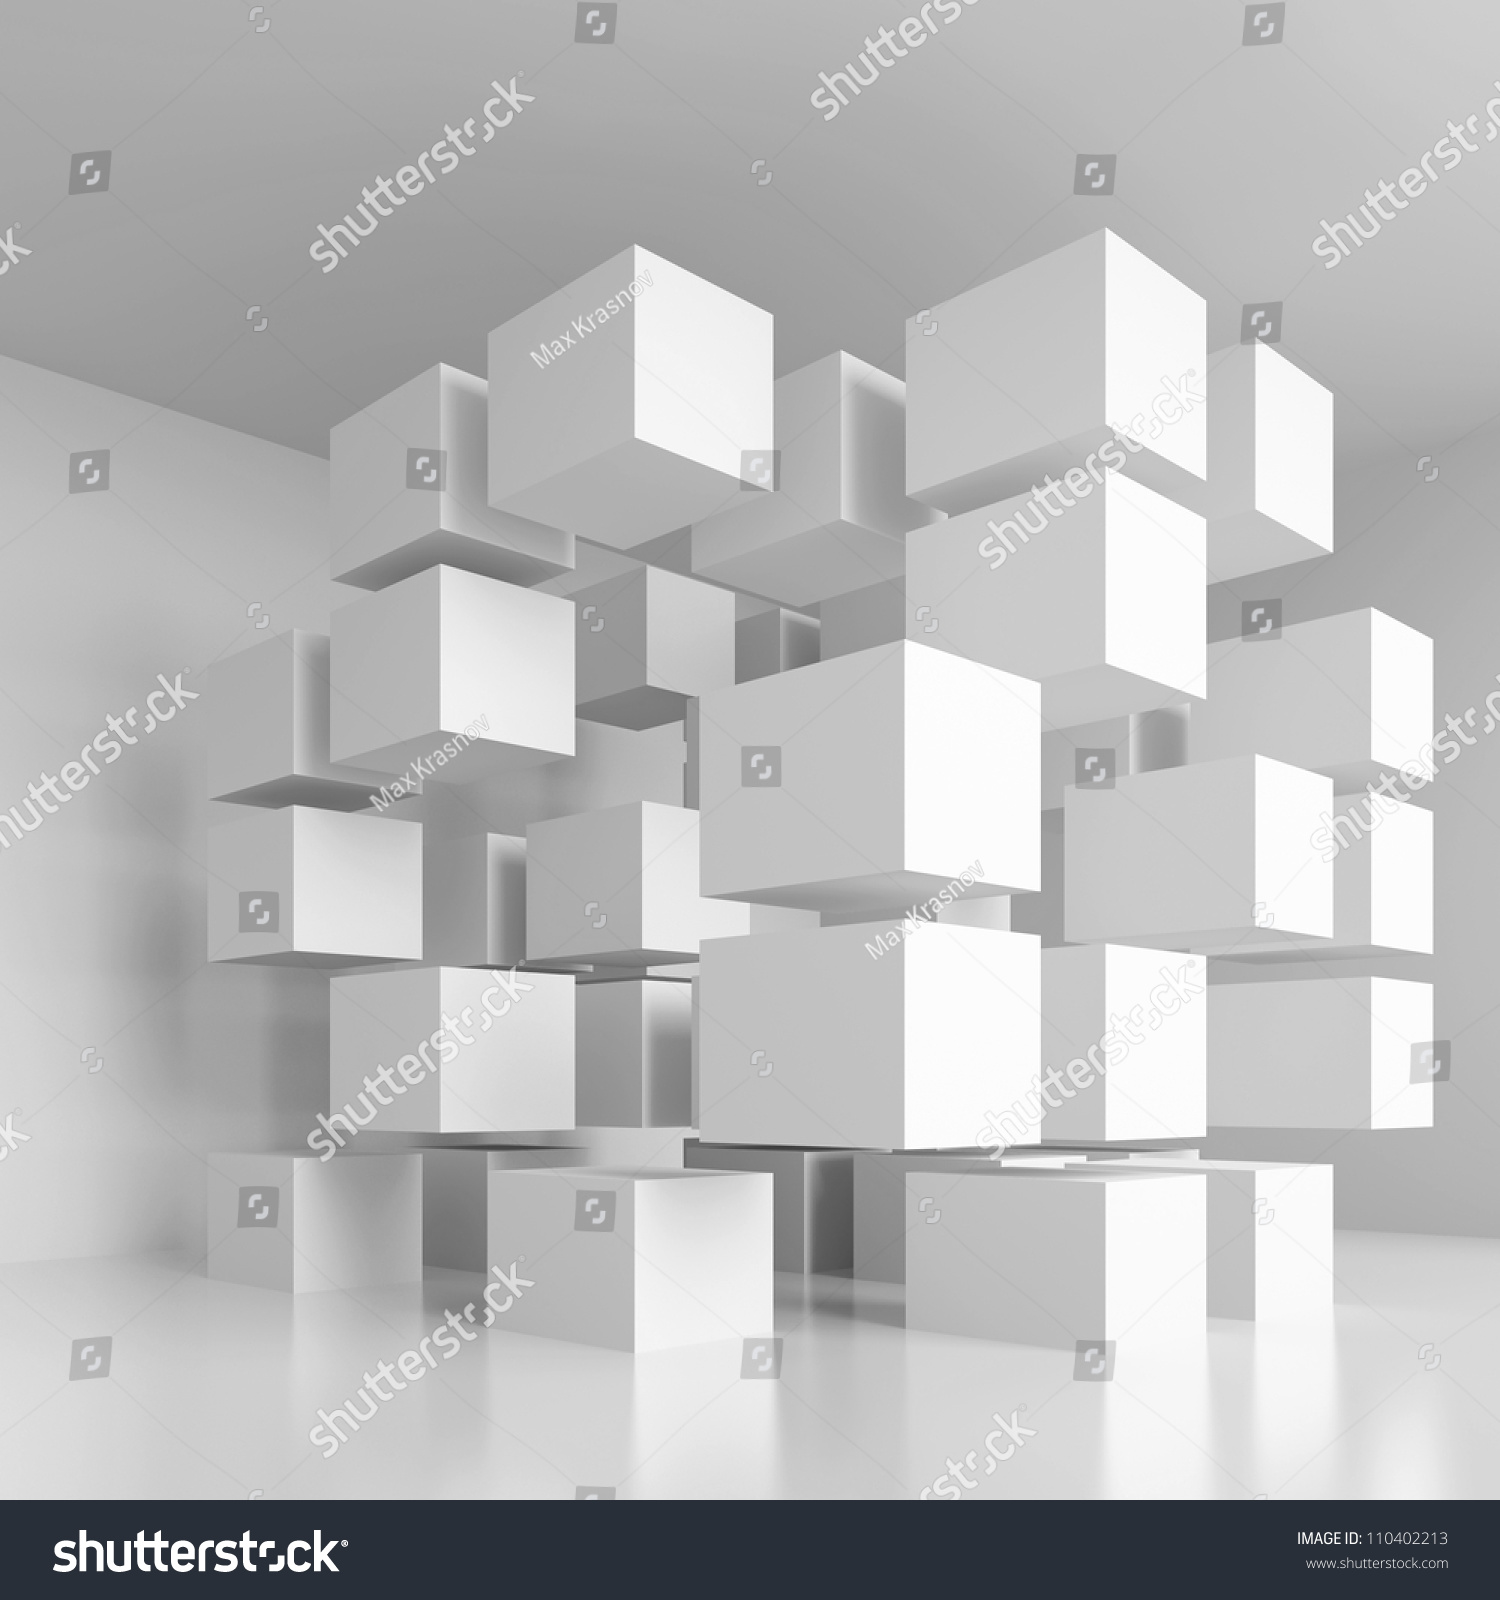 Creative Interior Design: Creative Interior Design Stock Illustration 110402213